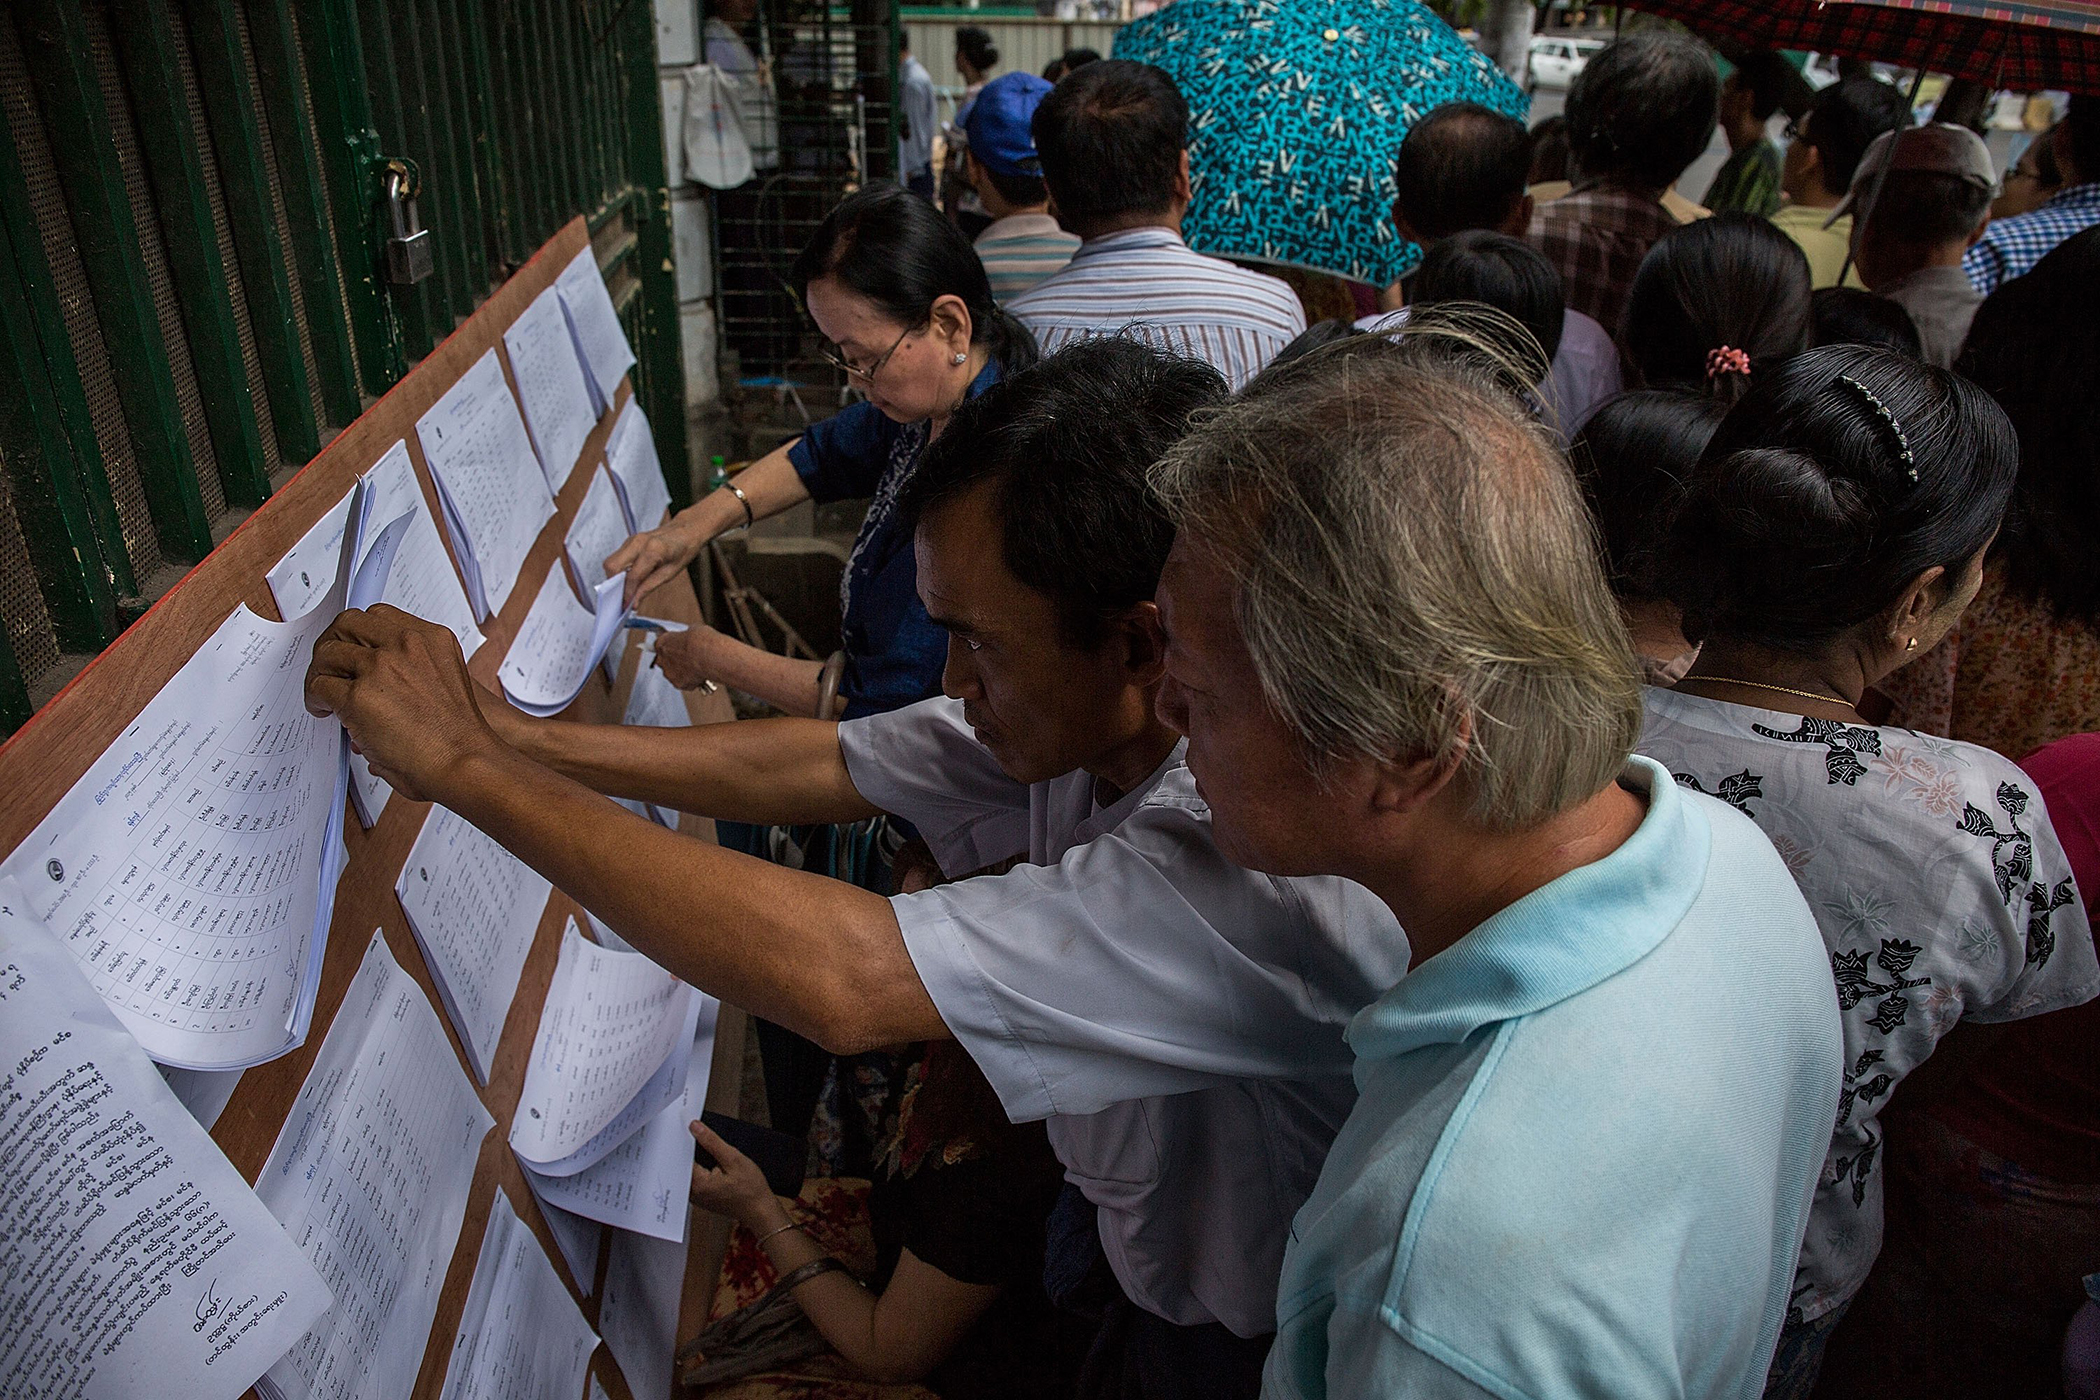 Voters check the list at a polling station in the Chinatown during Myanmar's first free and fair election in Yangon on Nov. 8, 2015.